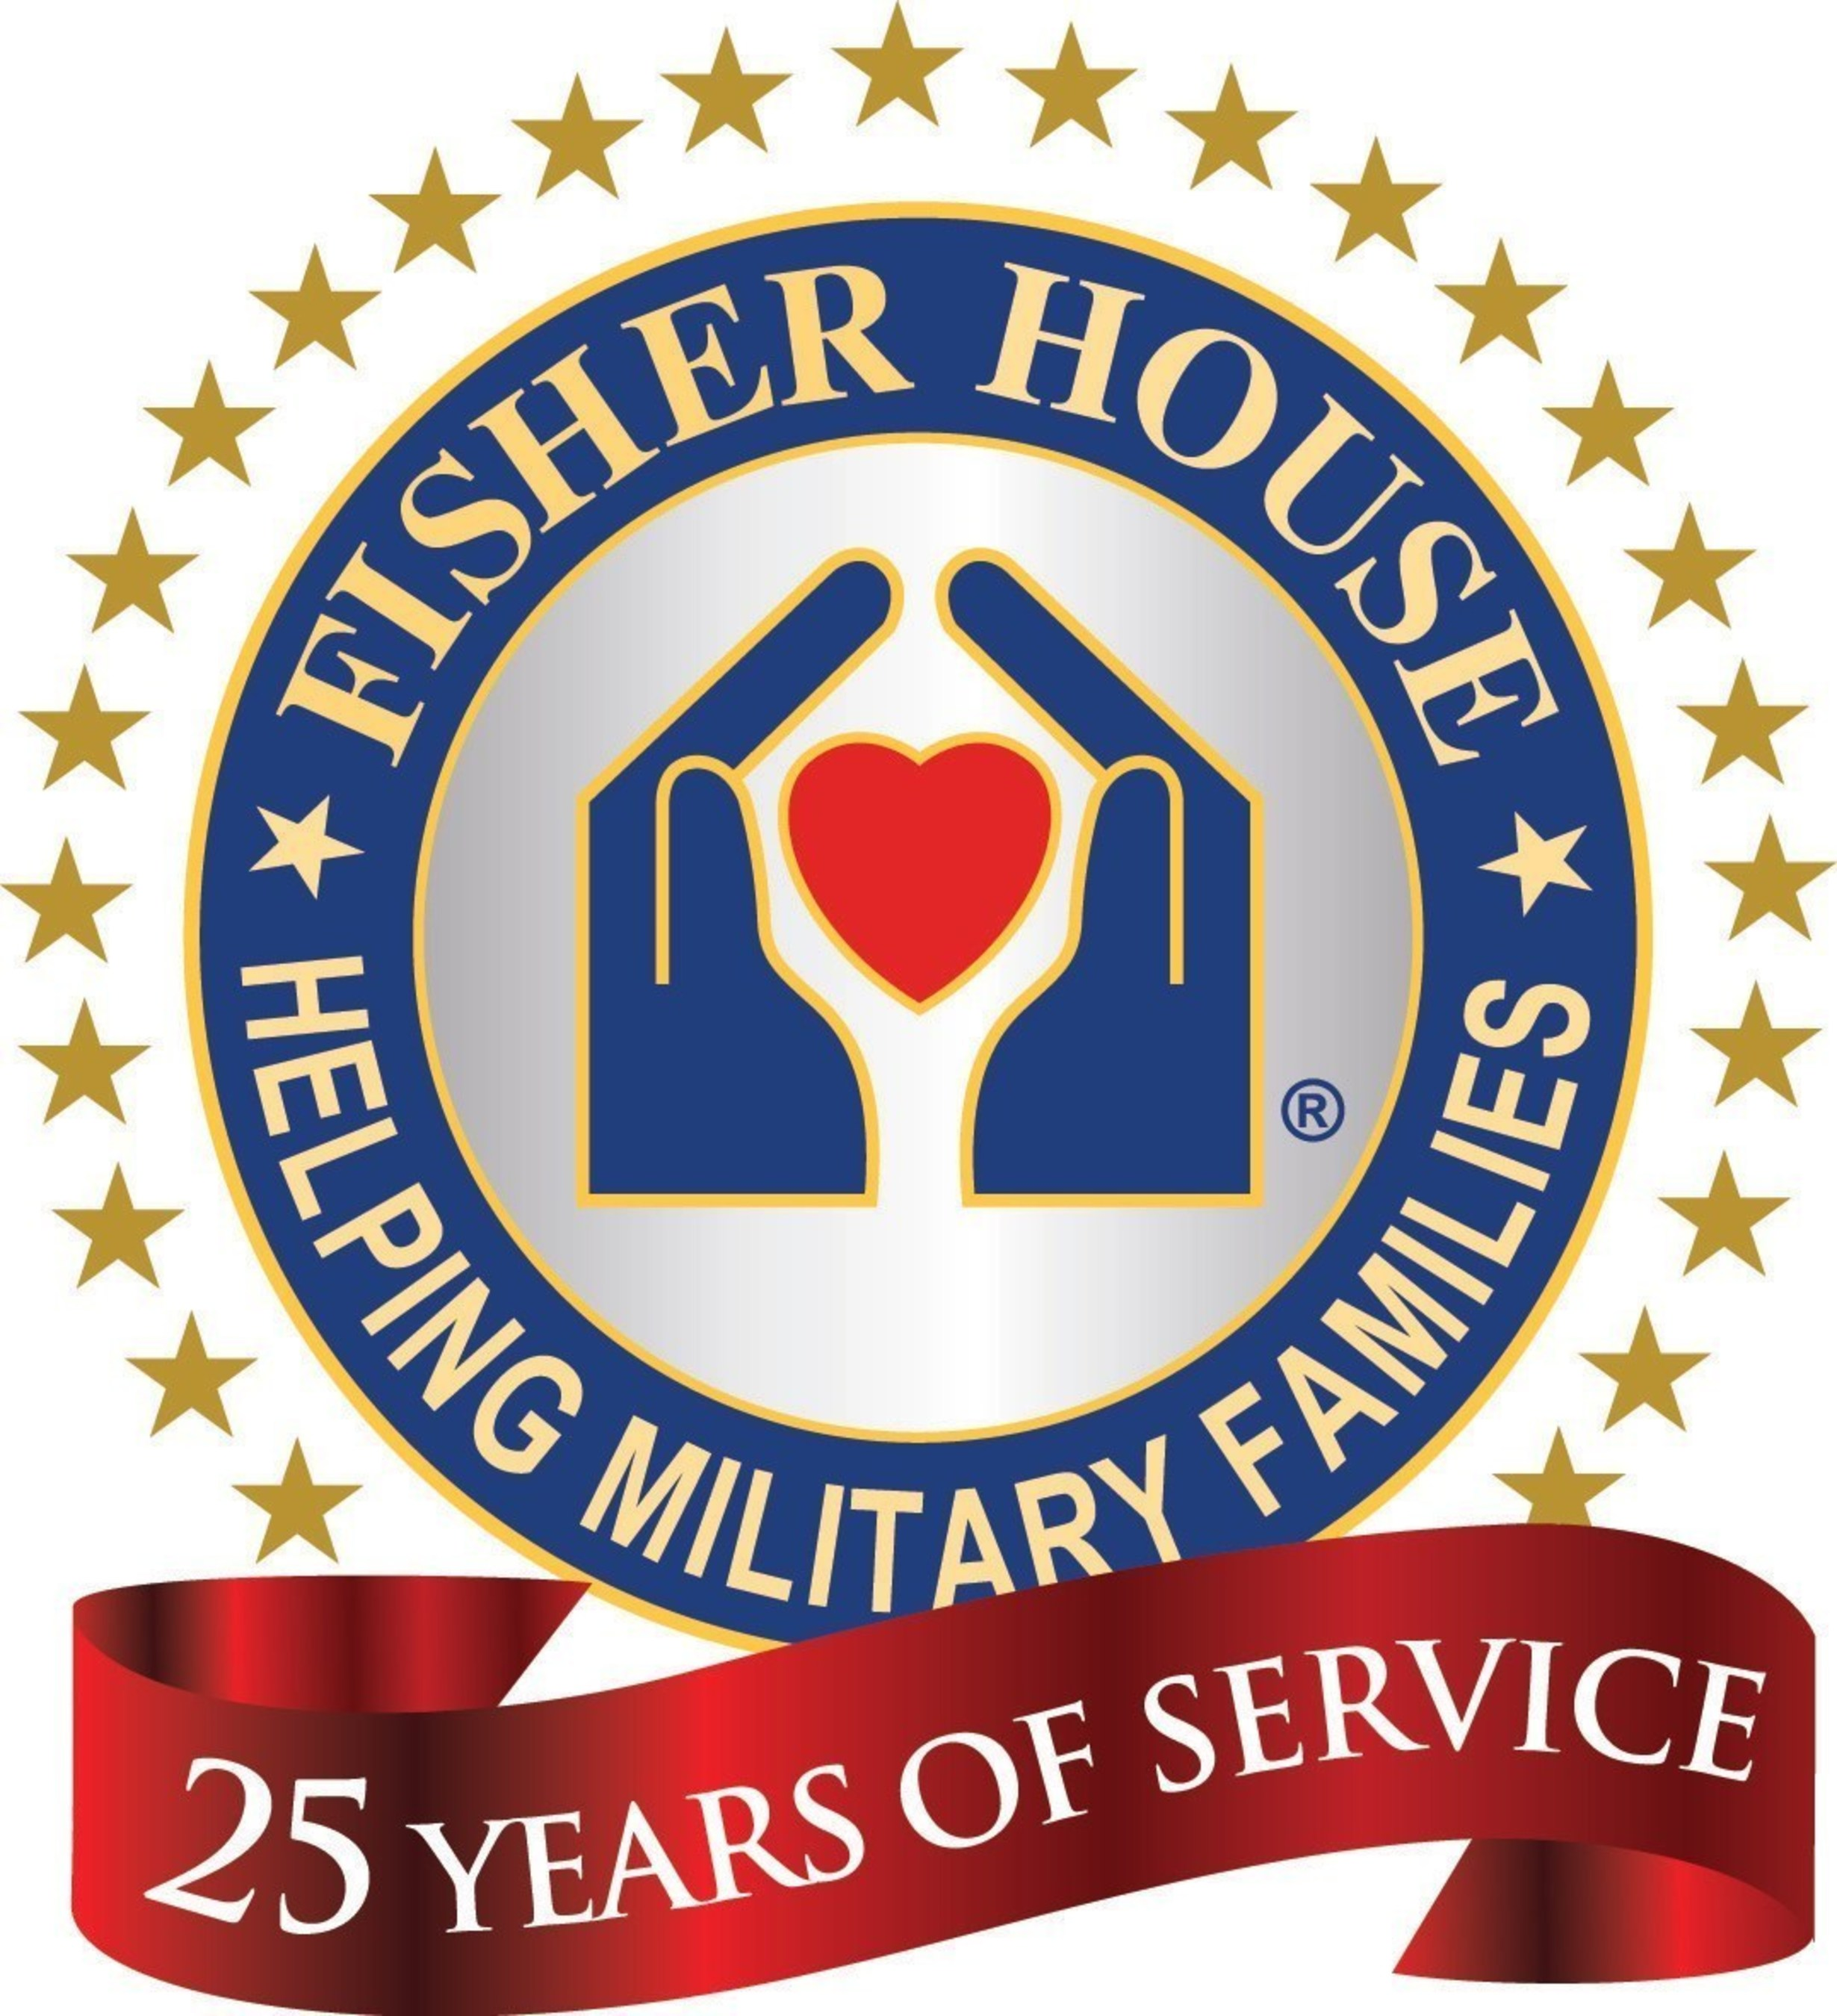 The Fisher House Foundation is a non-profit organization that provides no-cost lodging to the families of veterans receiving treatment at military medical centers. www.fisherhouse.org